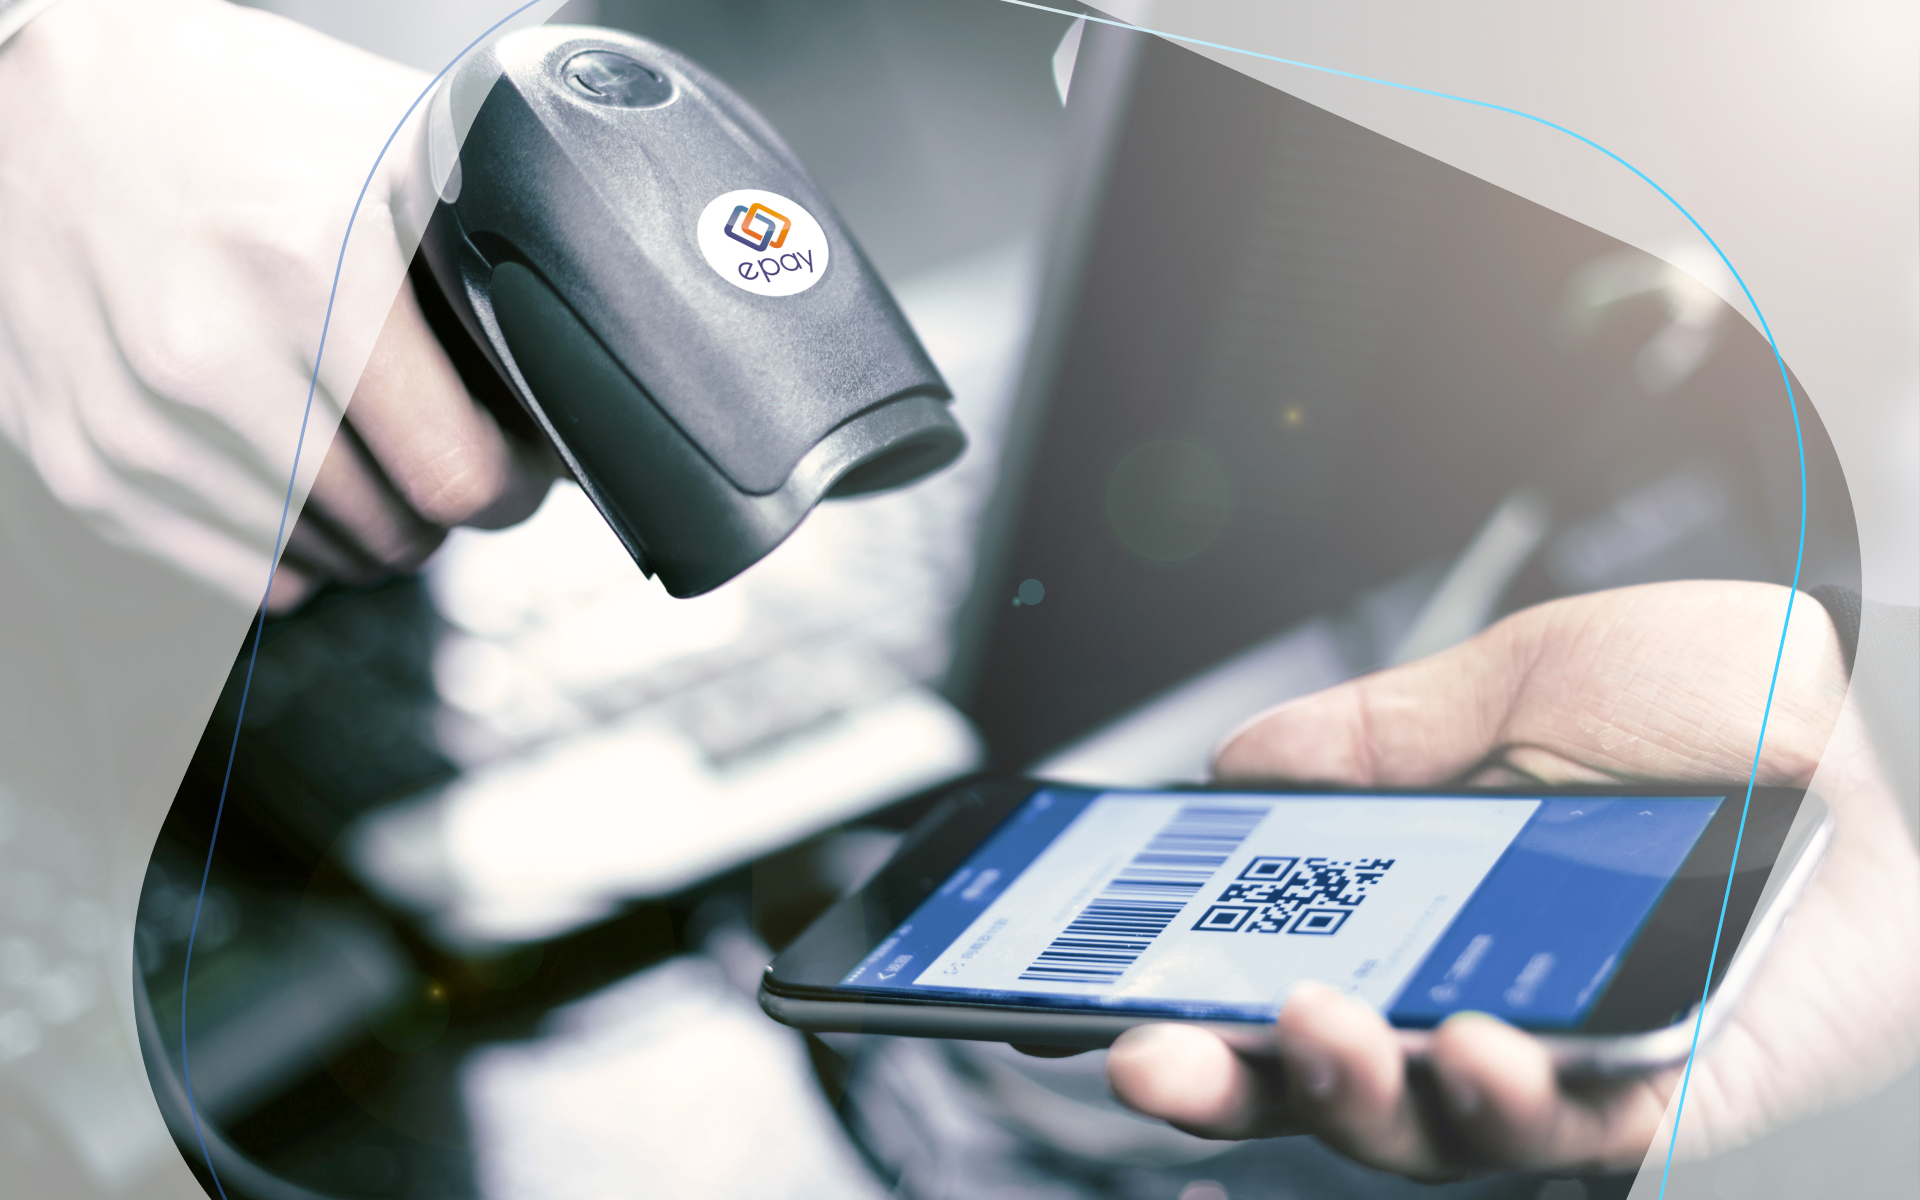 epay wird Mitglied der EHI Mobile-Payment-Initiative